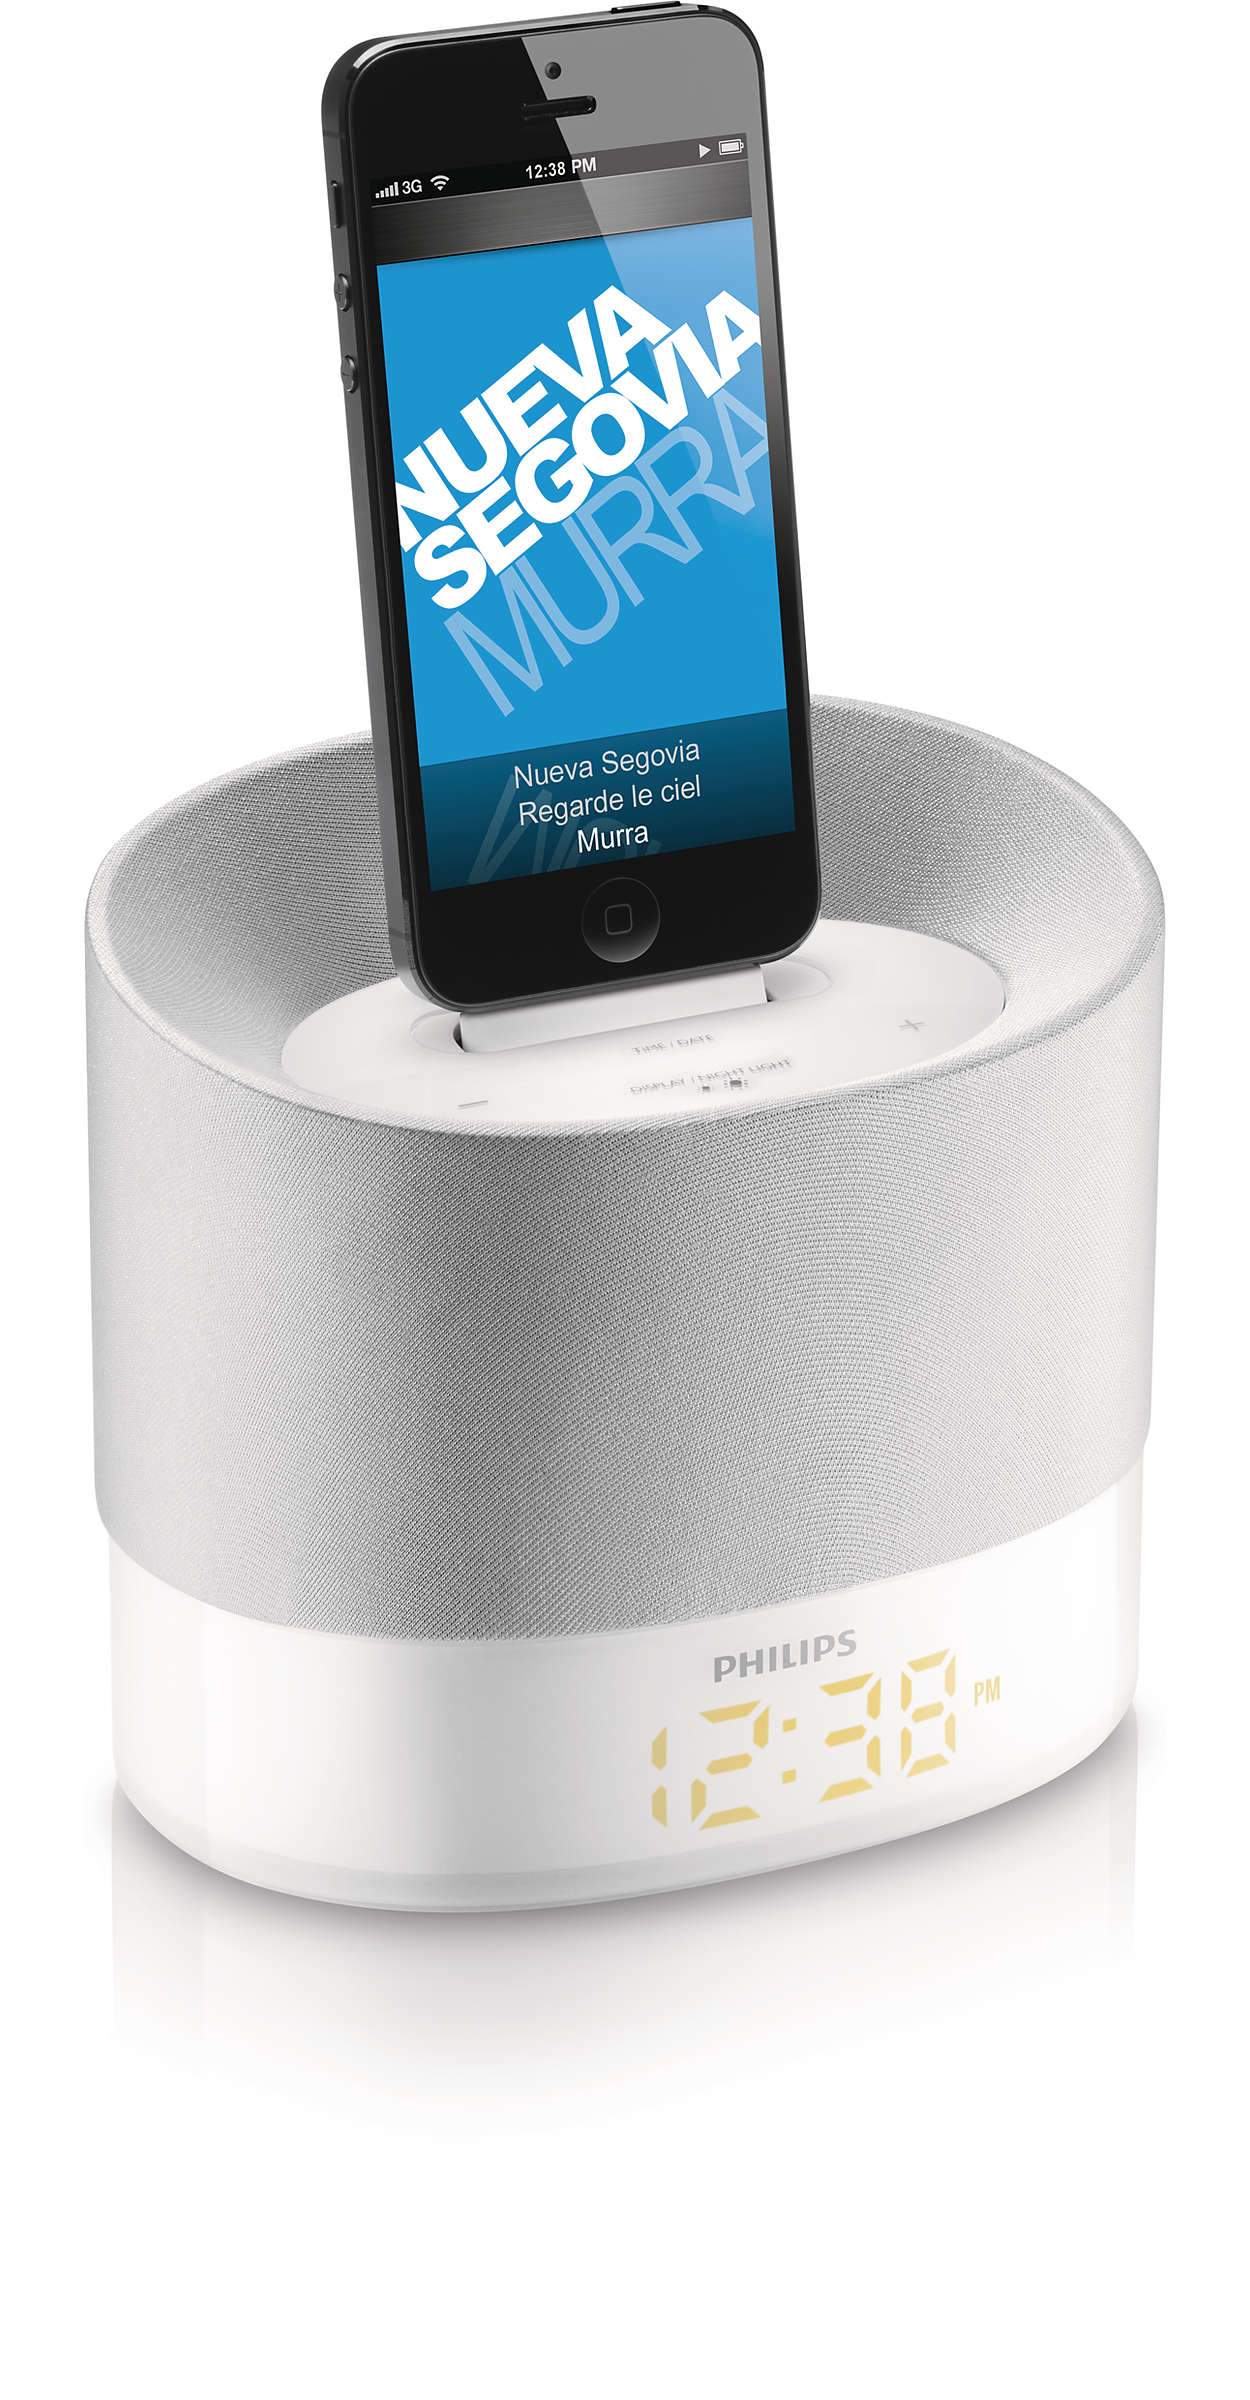 Iphone Docking Station Apple - The Most Beautiful Dock 2017